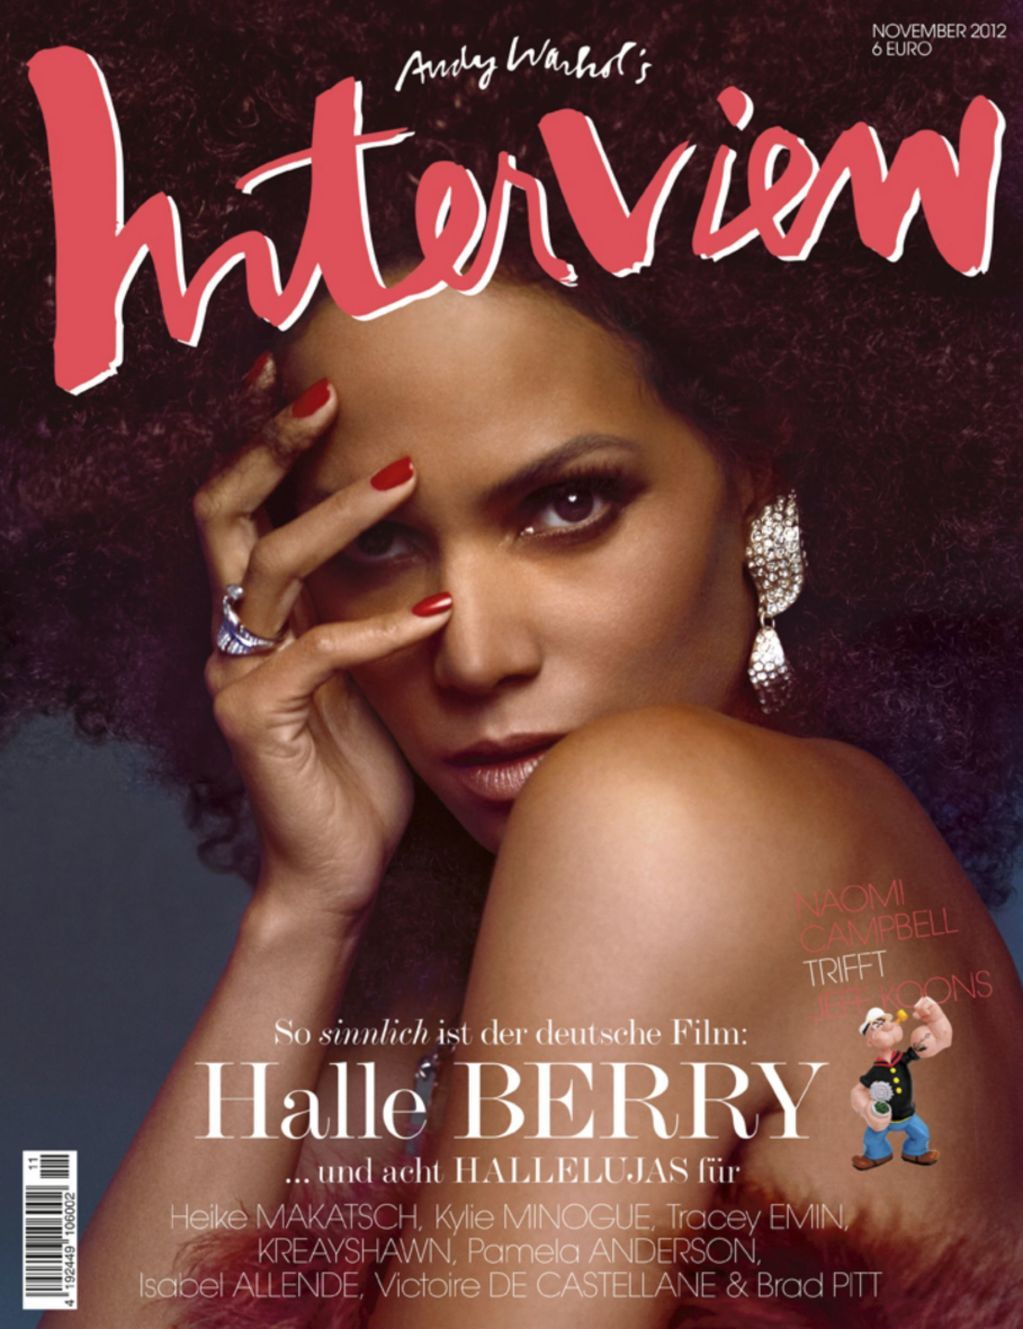 Halle-Berry-in-Interview-Germany-November-2012-1